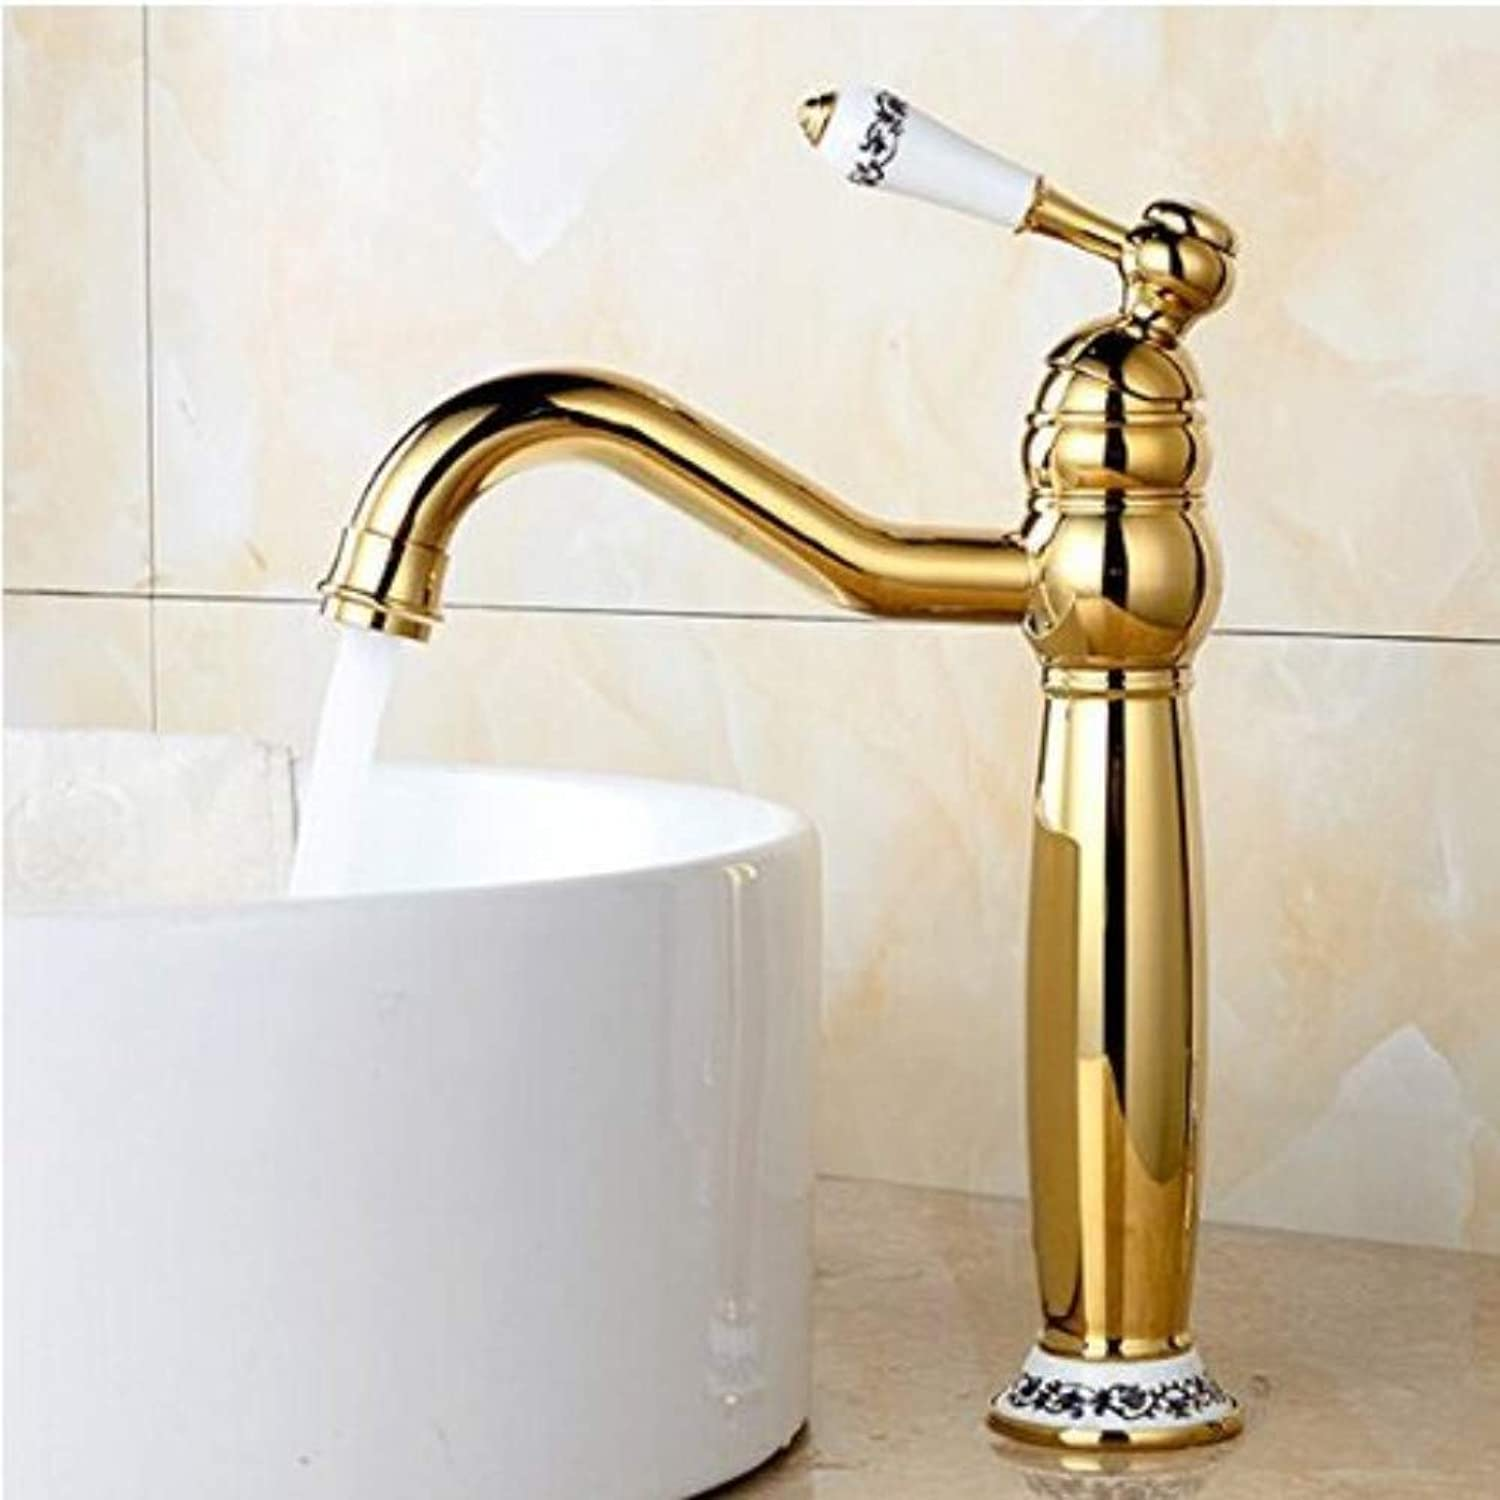 360° redating Faucet Retro Faucetbathroom Sink Taps Hot and Cold Fashion Vintage Faucet Sink Faucet